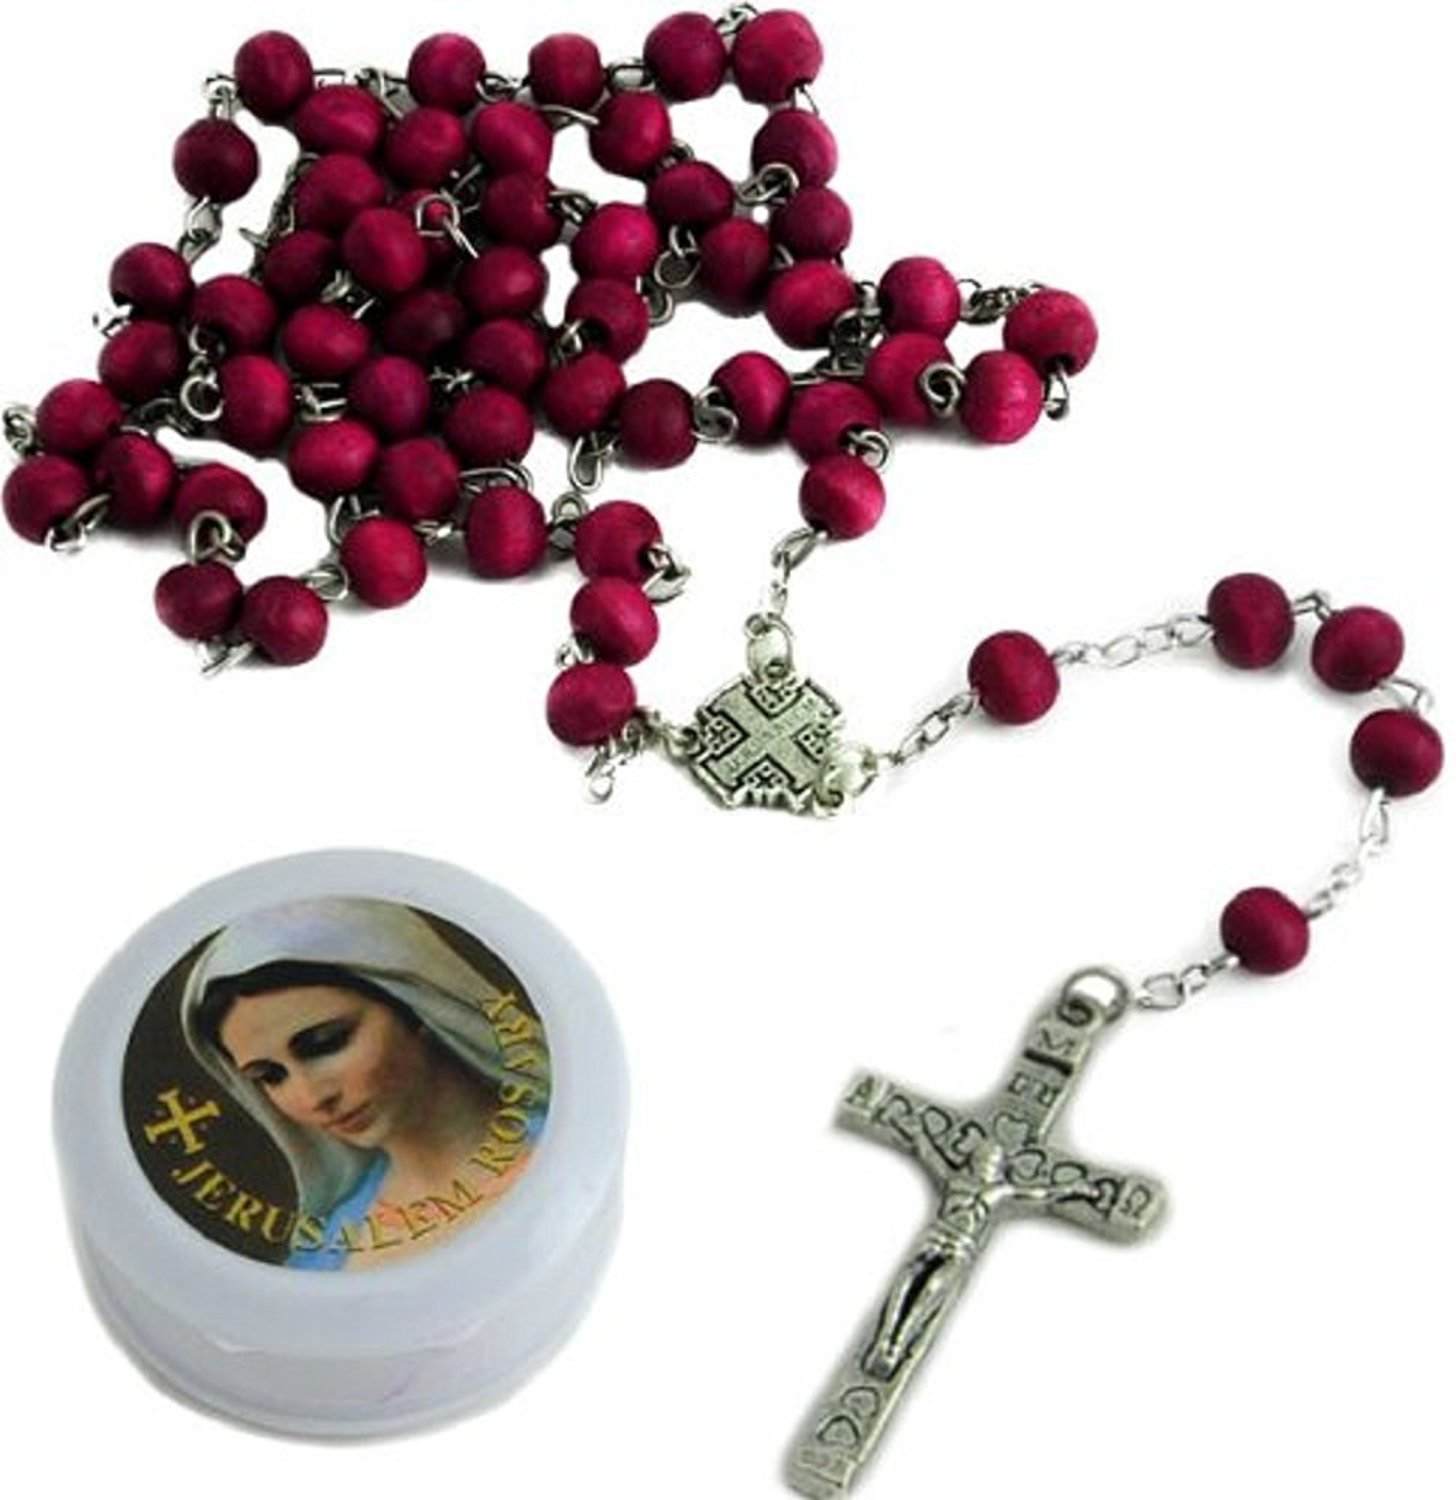 Lot of 12 Red Rose Scented Rosary Beads Catholic Necklace Christian Pendant prayer Blessed Wood Long Israel by Bethlehem Gifts TM